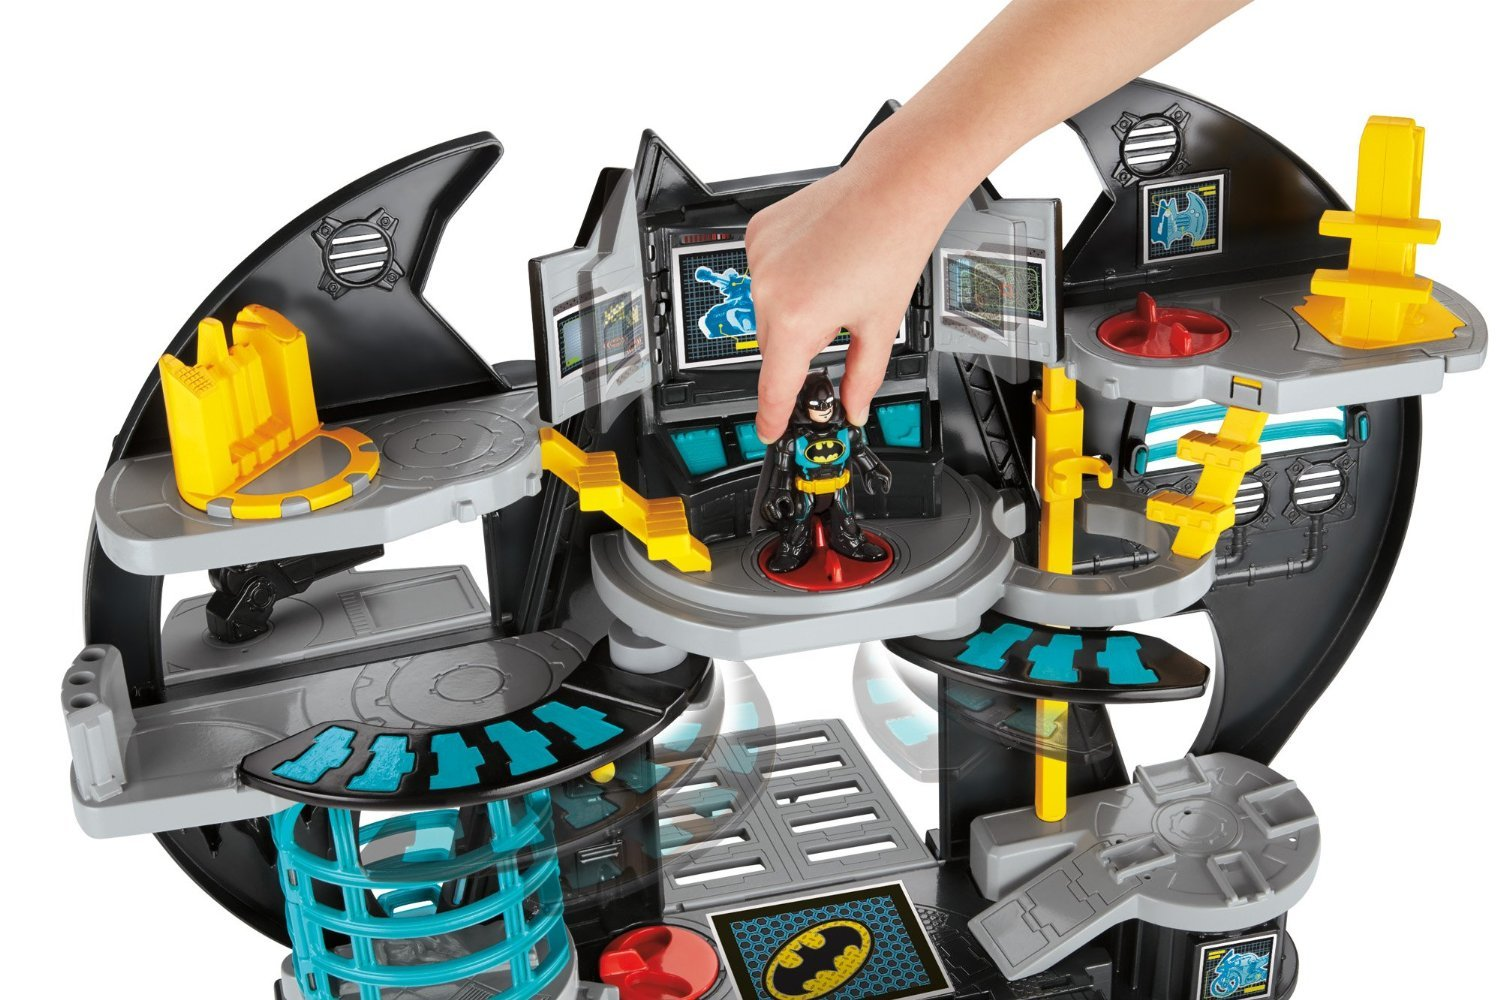 Batman Toys For Kids : Imaginext batcave batman cave with figures